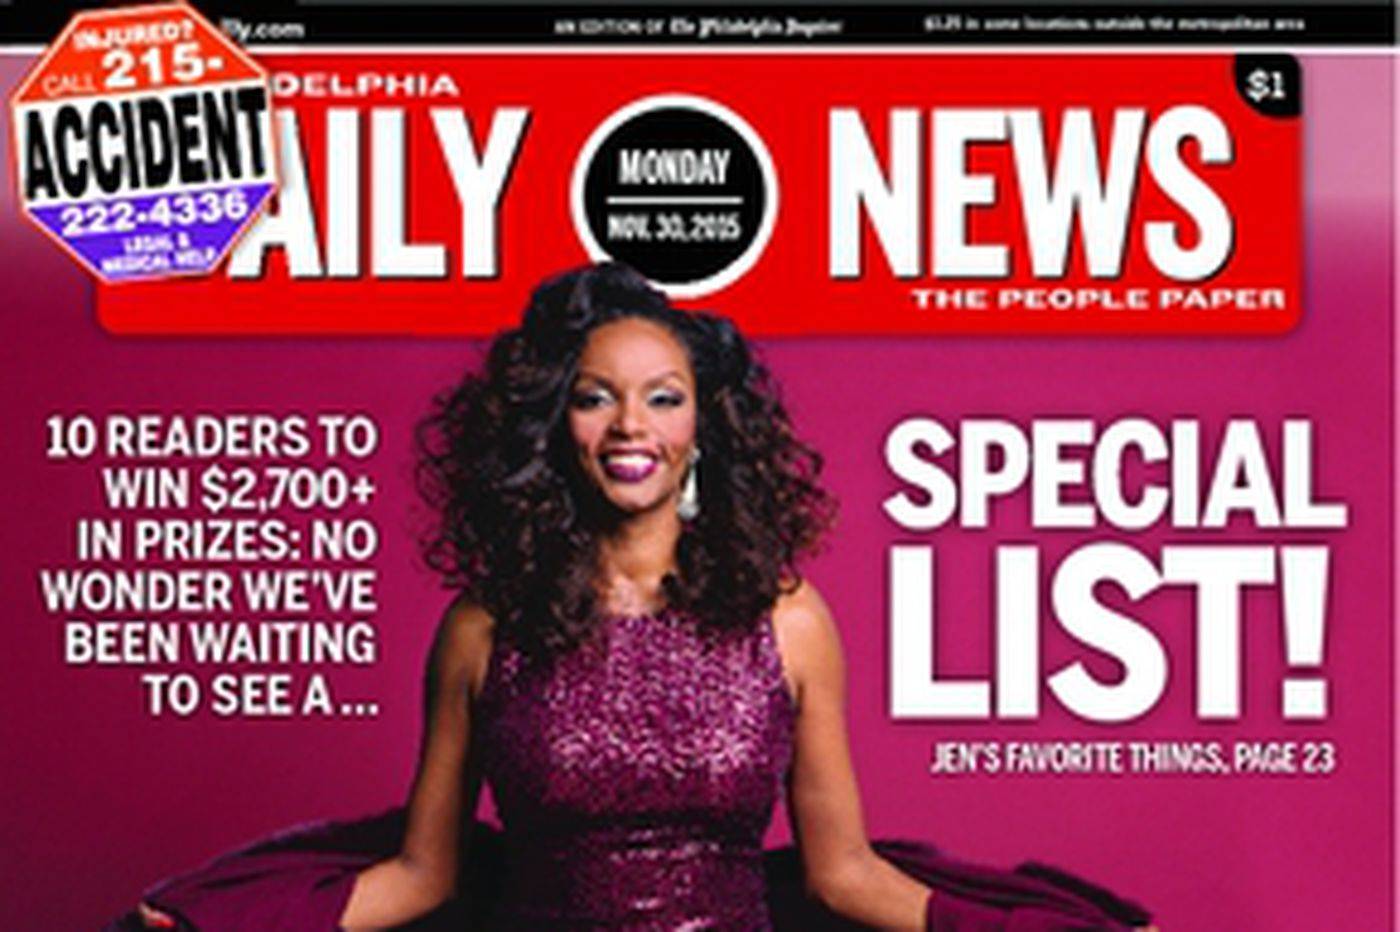 Dailynews Monthly Covers 11/30/15